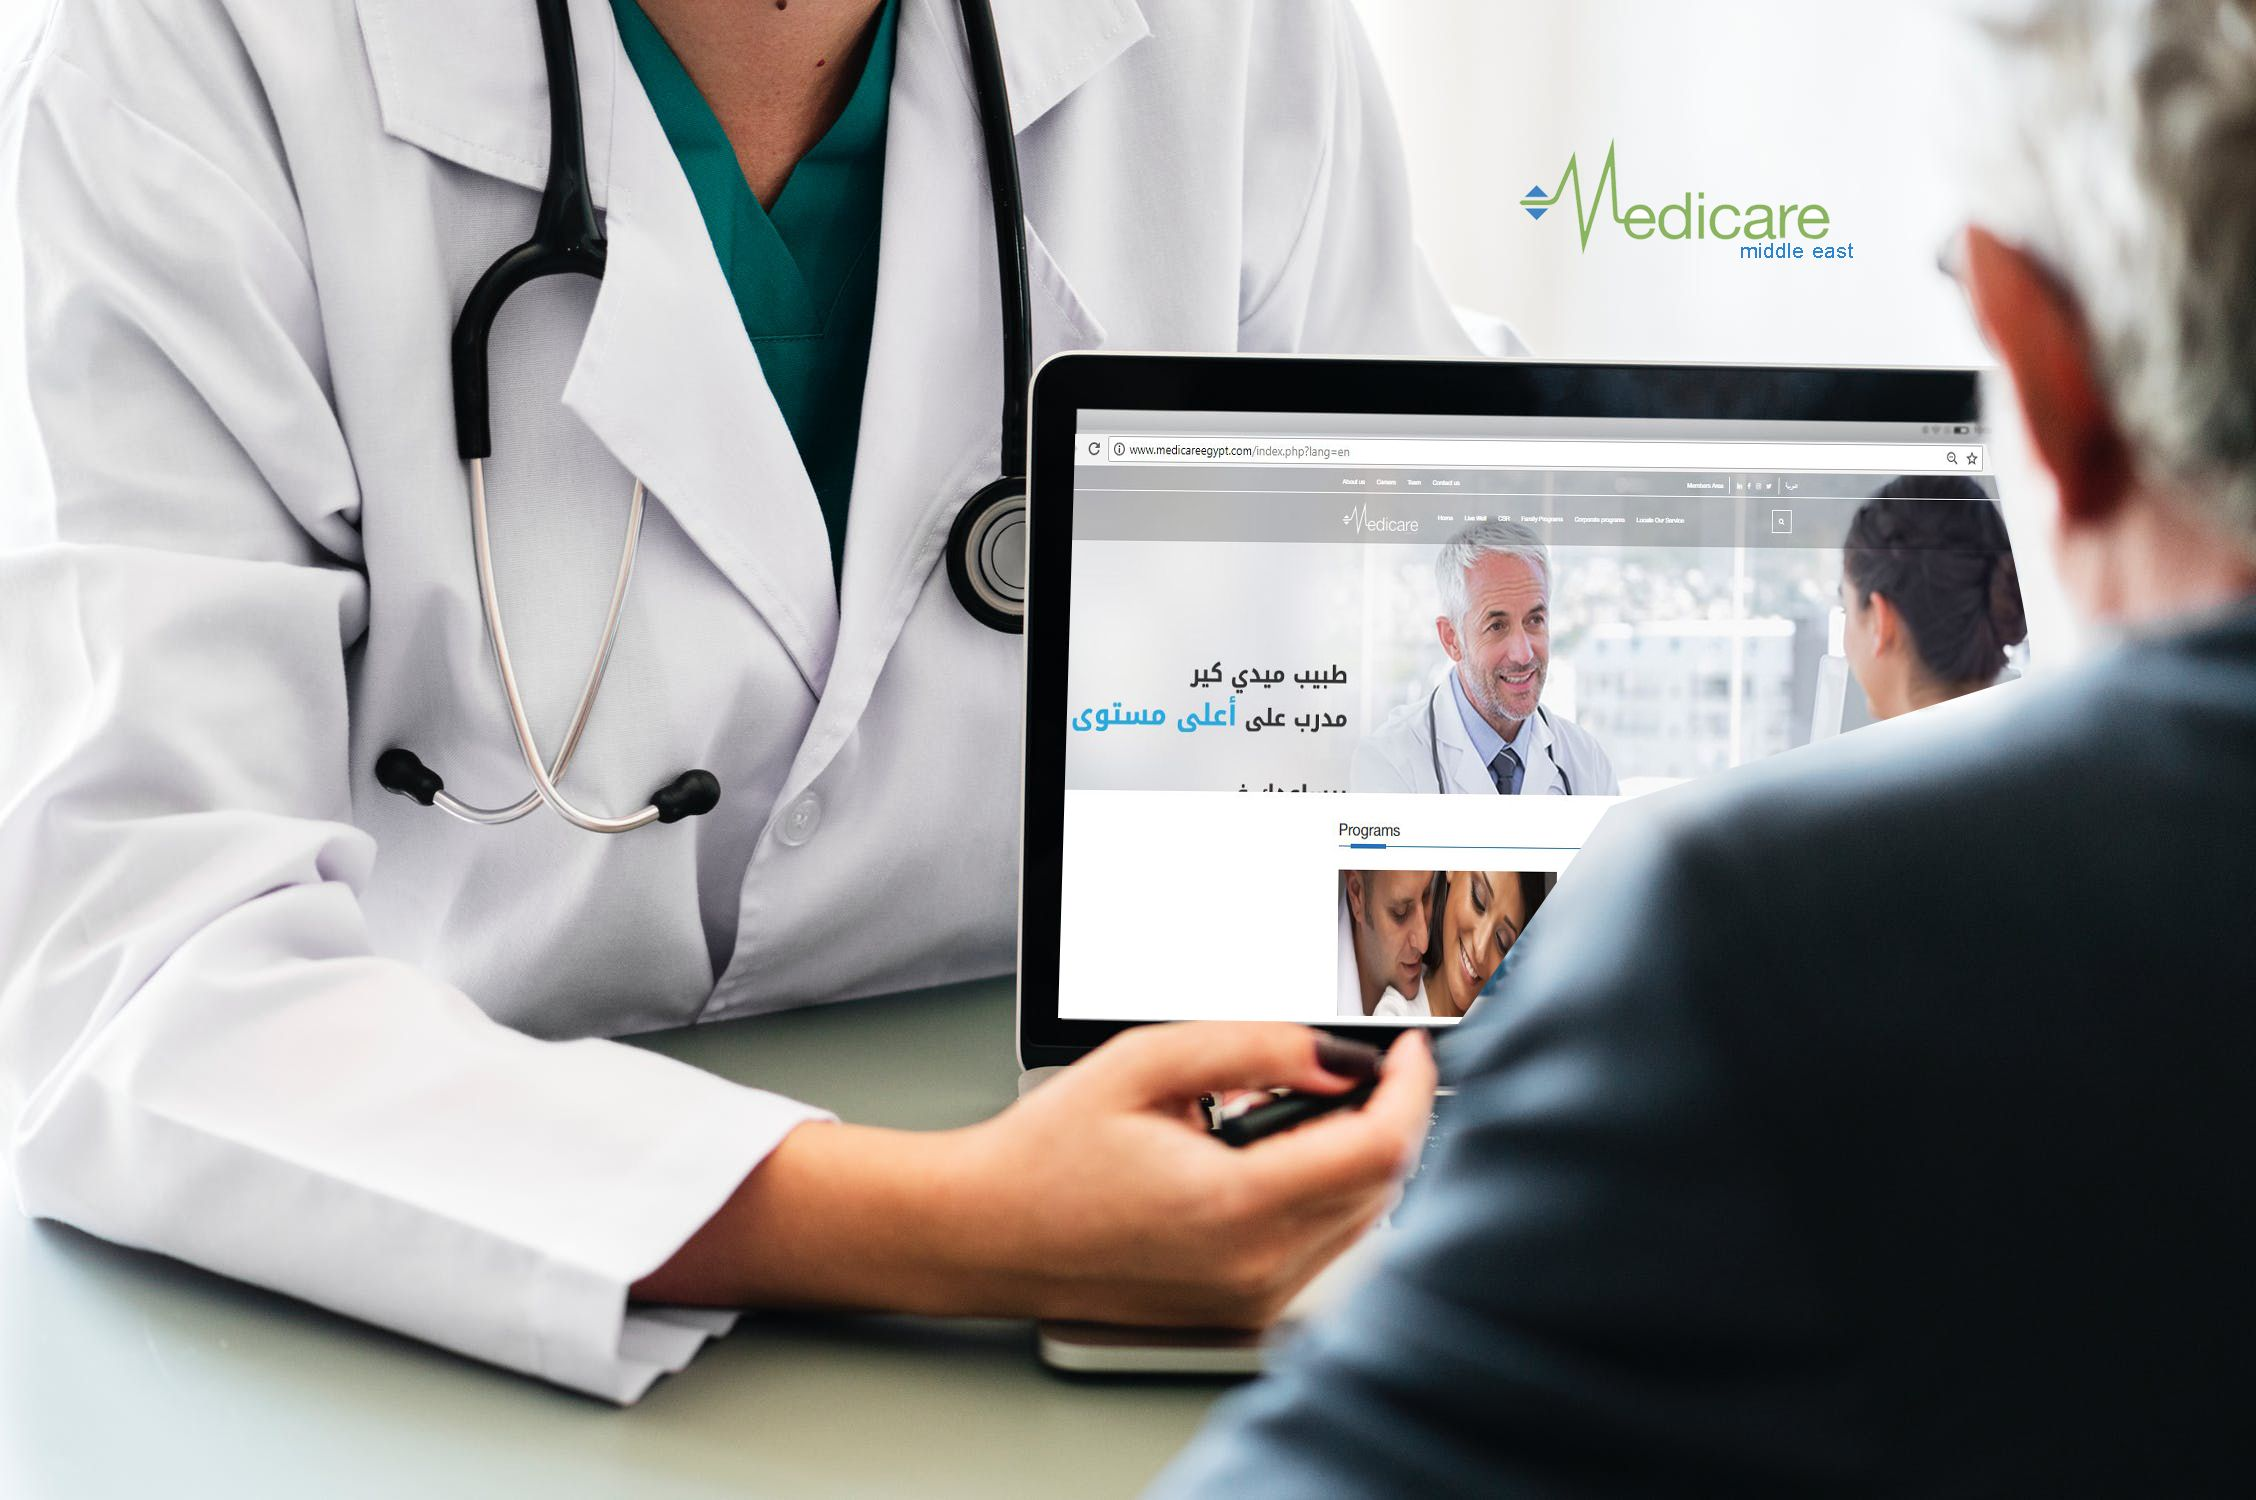 medical insurance company in egypt which providing a very